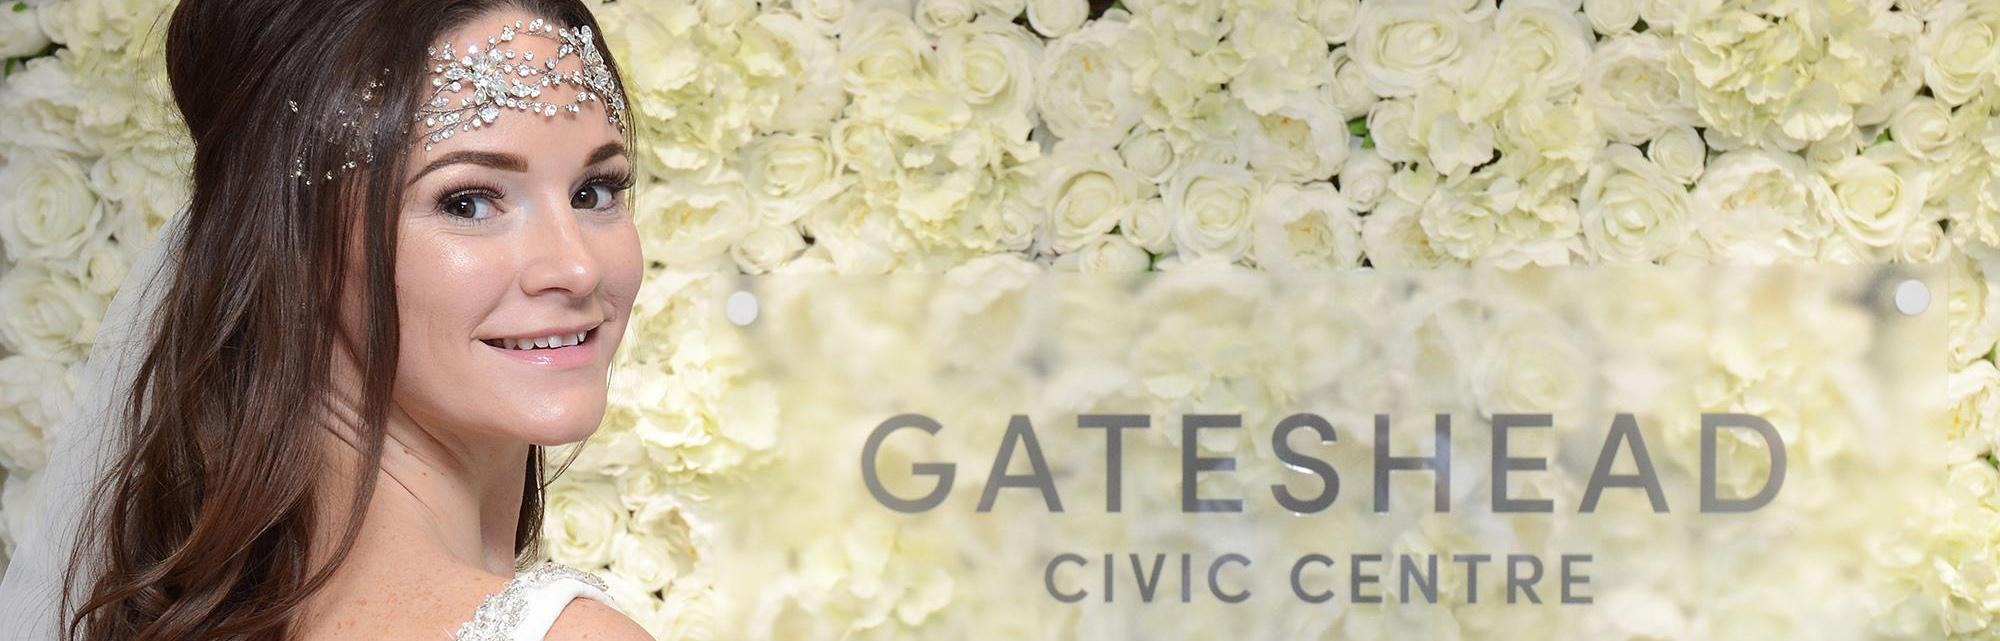 Gateshead Civic Centre wedding venue header